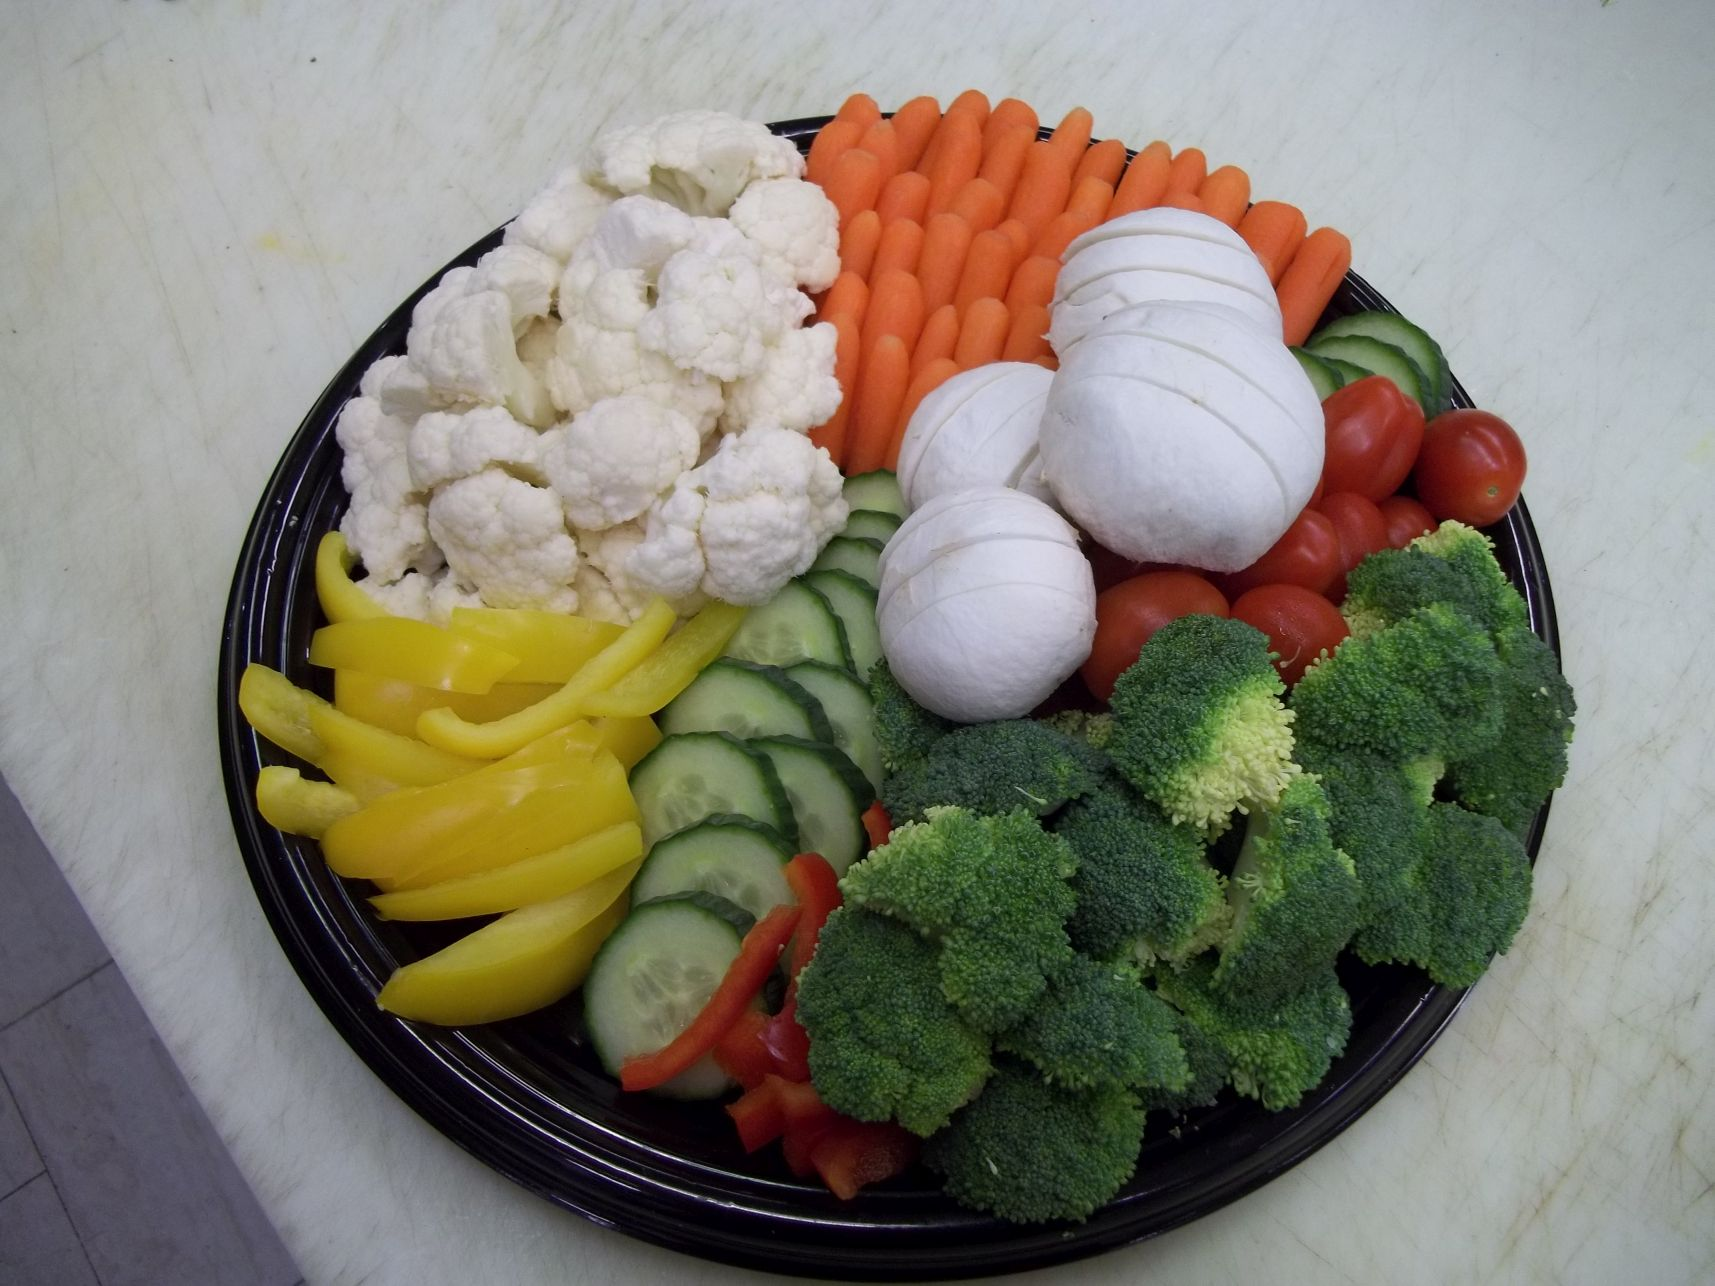 vegetables cater